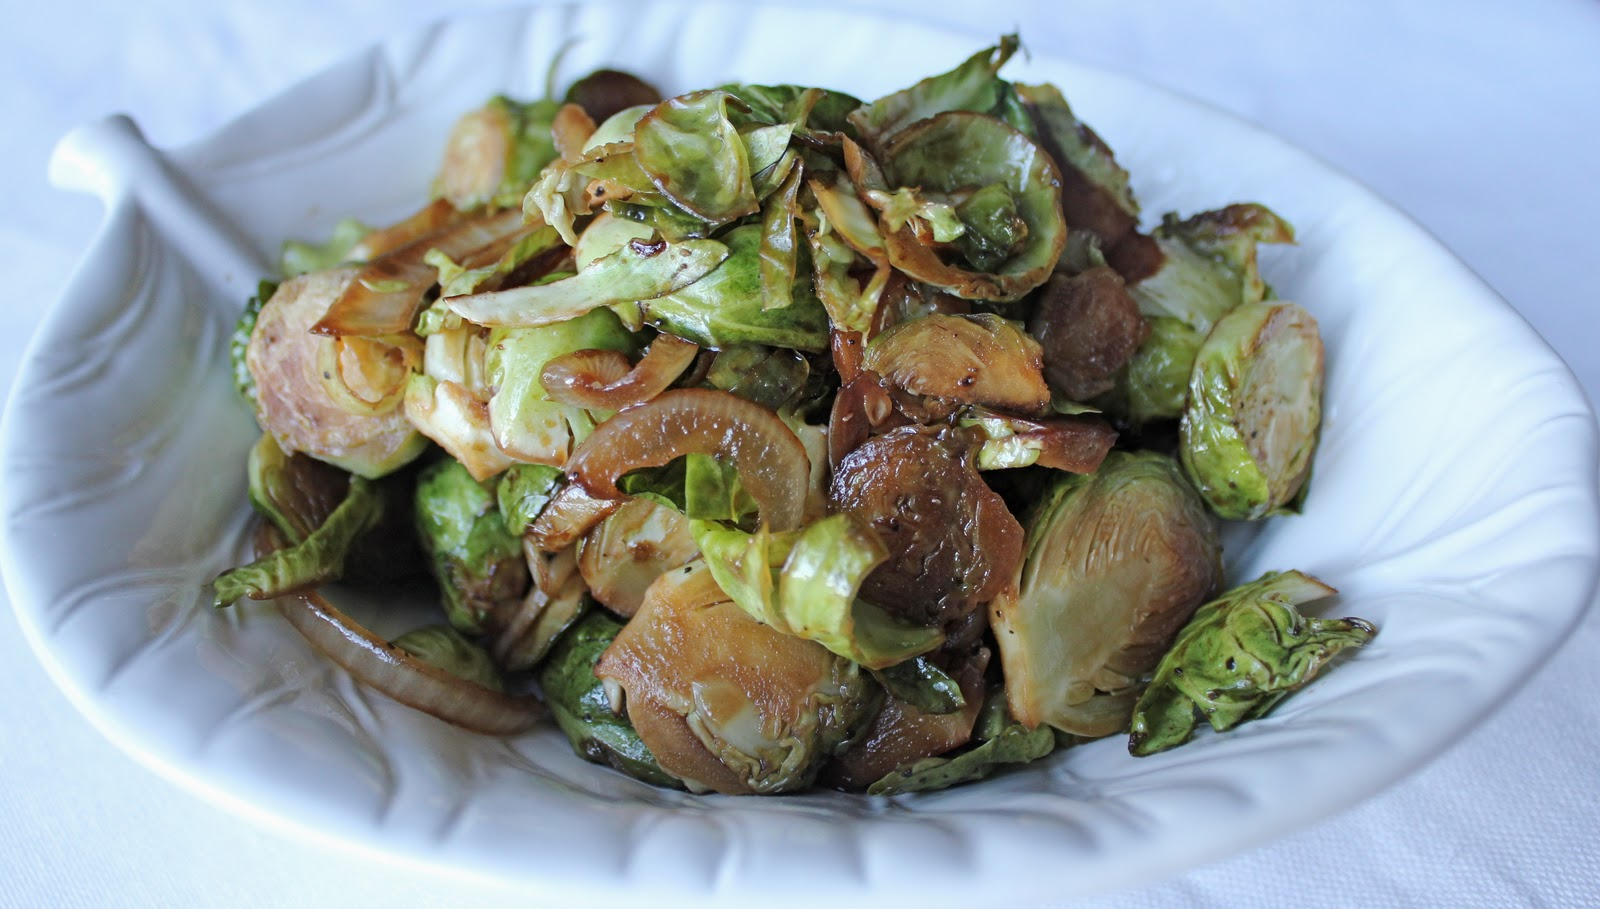 ... black bean sauce recipes dishmaps brussels sprouts in black bean sauce